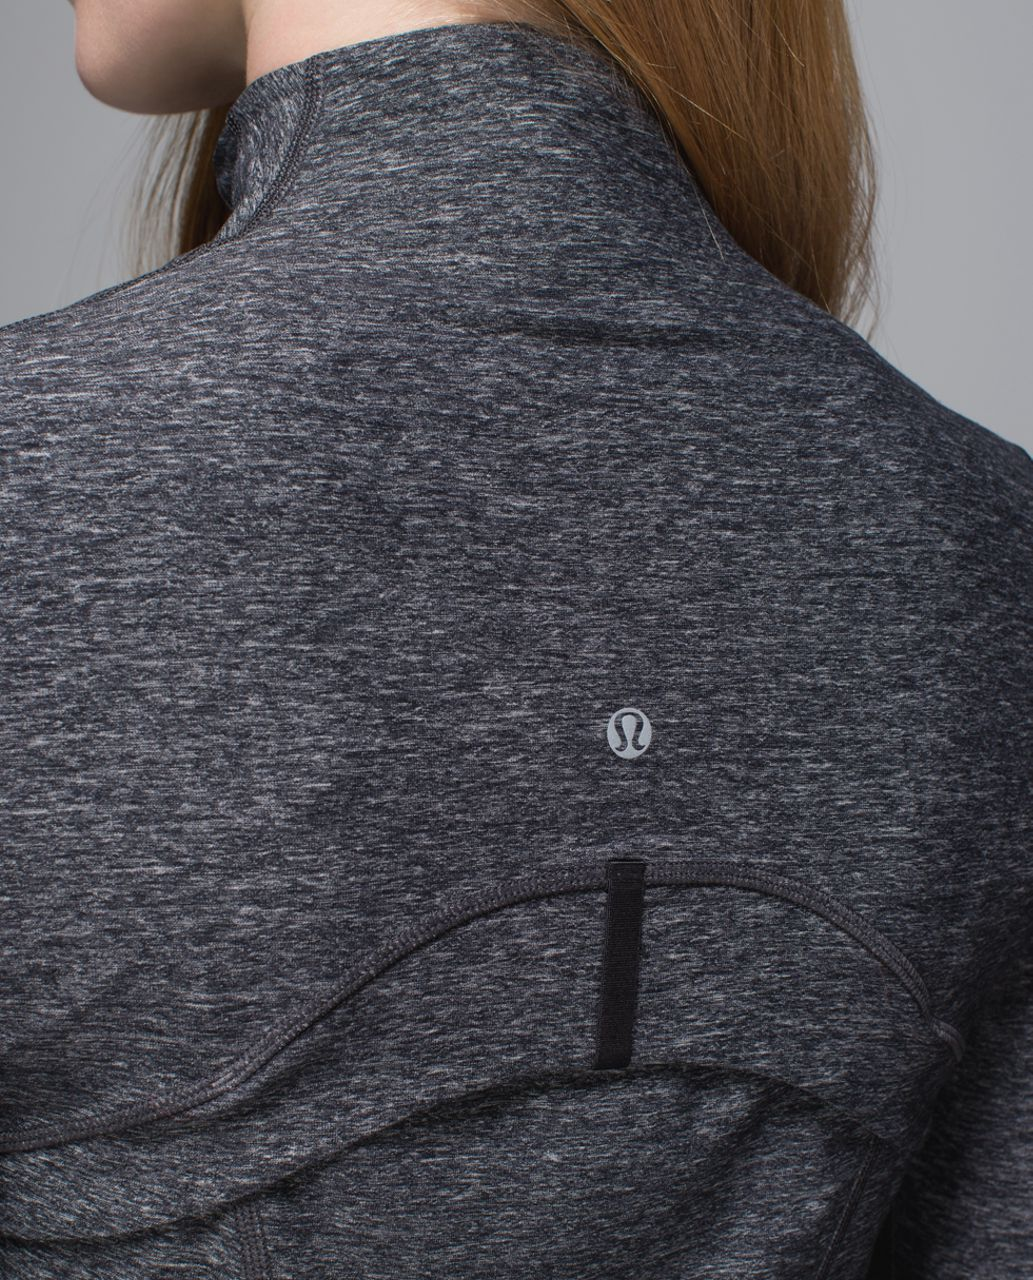 Lululemon Define Jacket (First Release) - Heathered Black